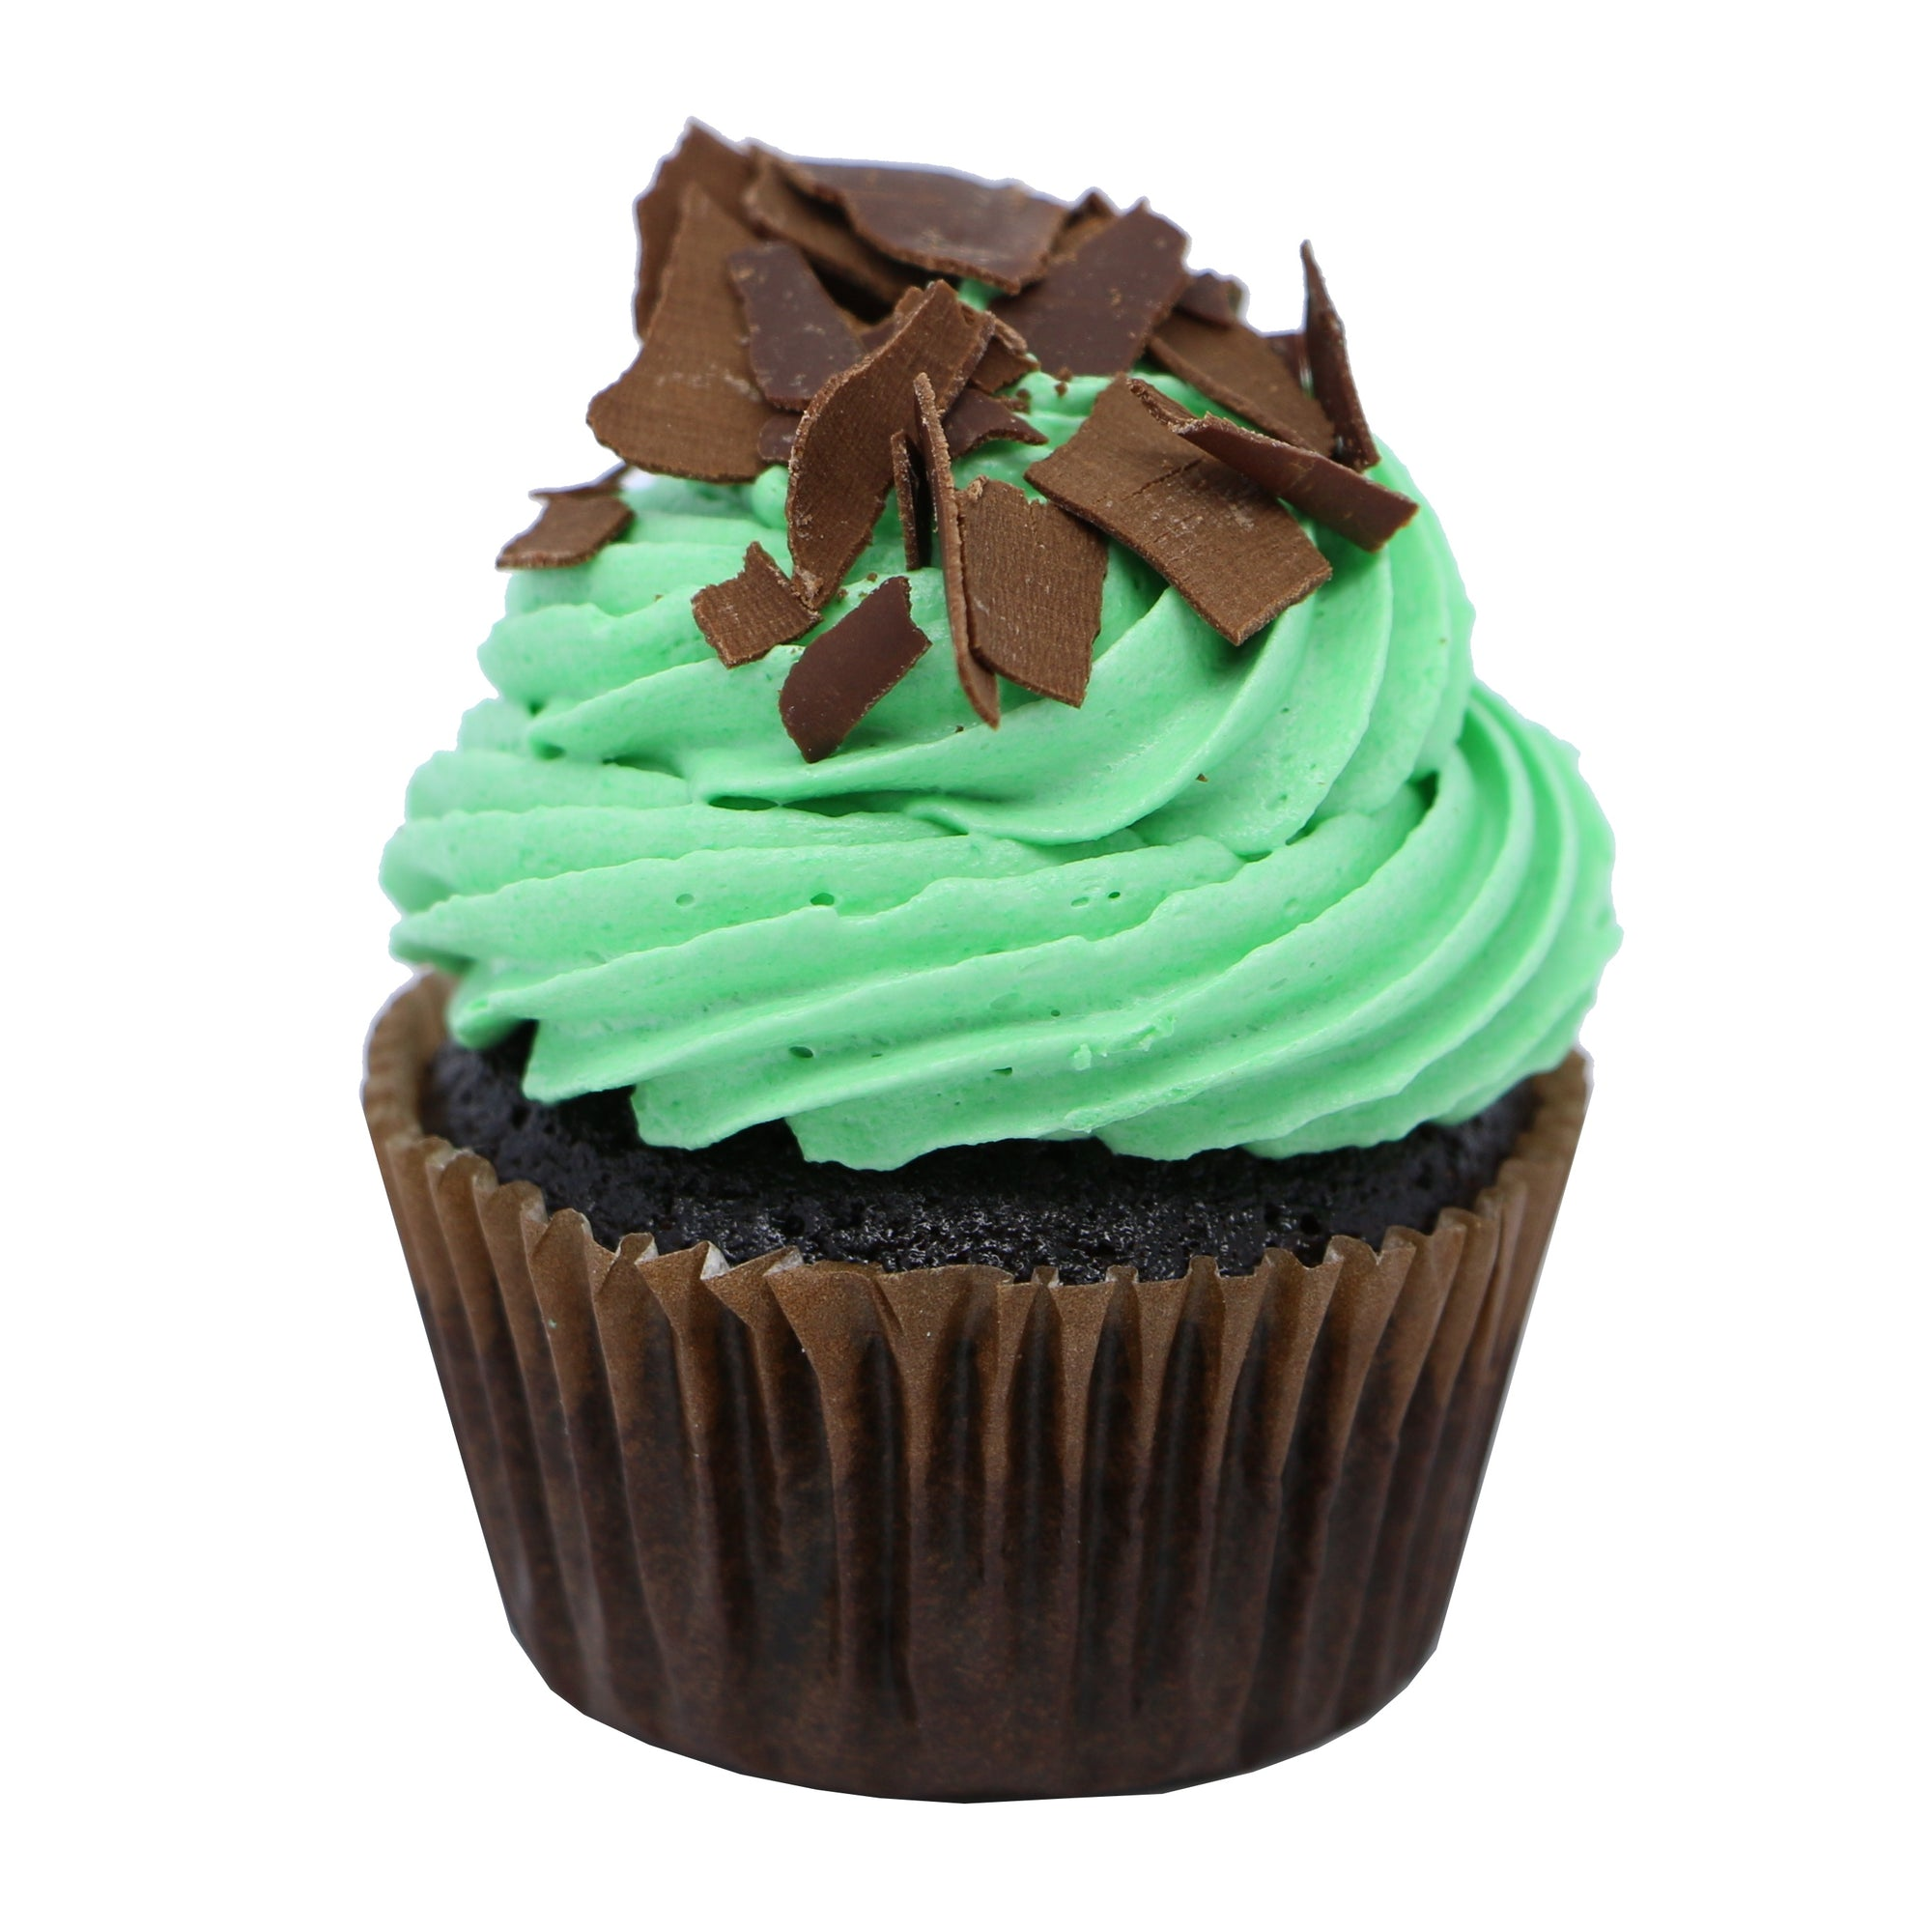 Mini Cupcake - Choc Mint - Treats2eat - Wedding & Birthday Party Dessert Catering Near Me